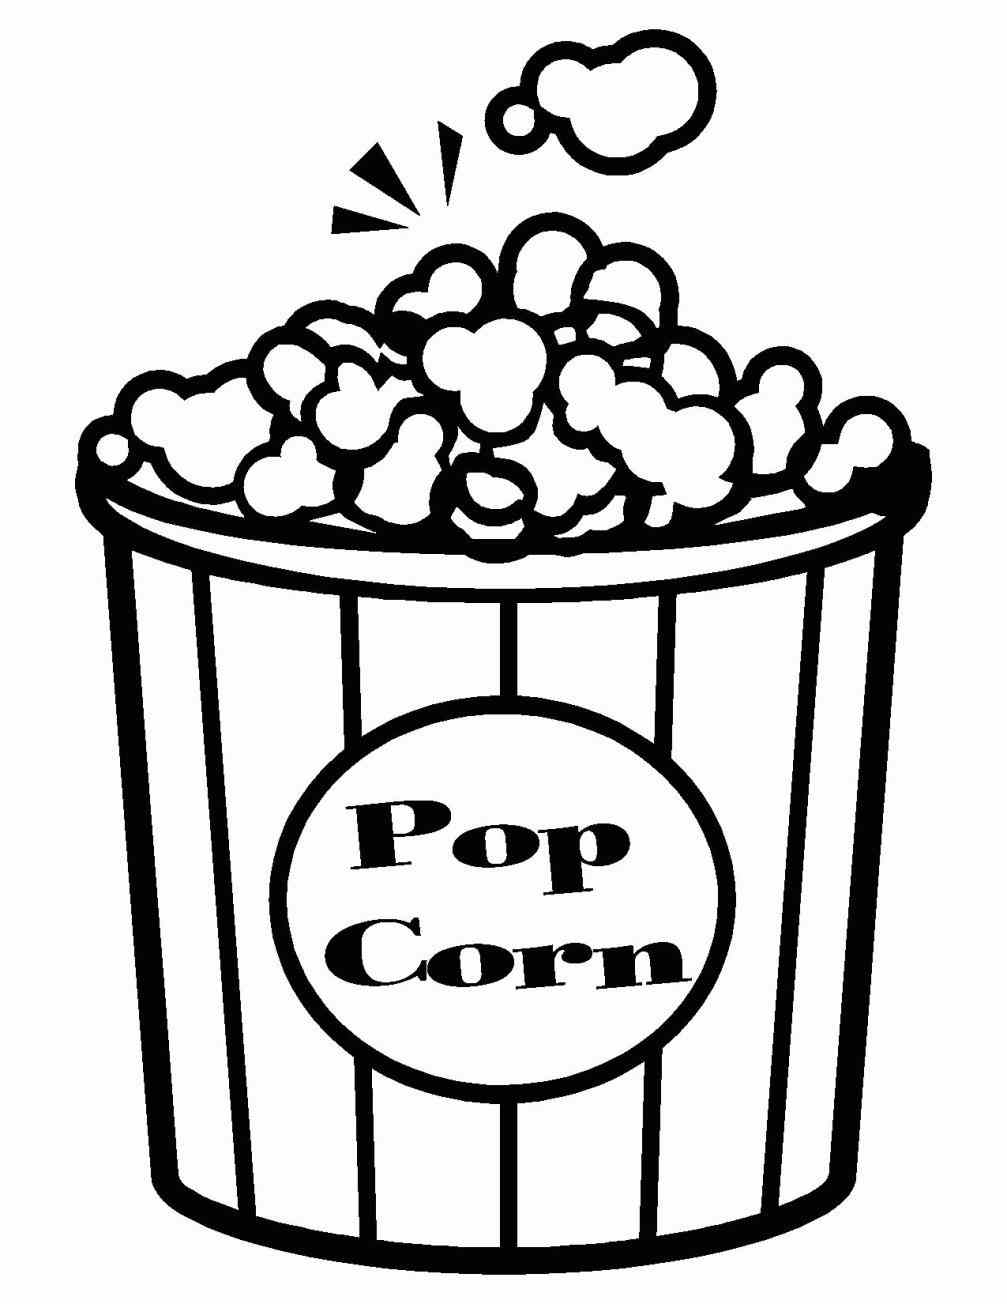 1007x1304 Professional Popcorn Coloring Sheet Pages Printable